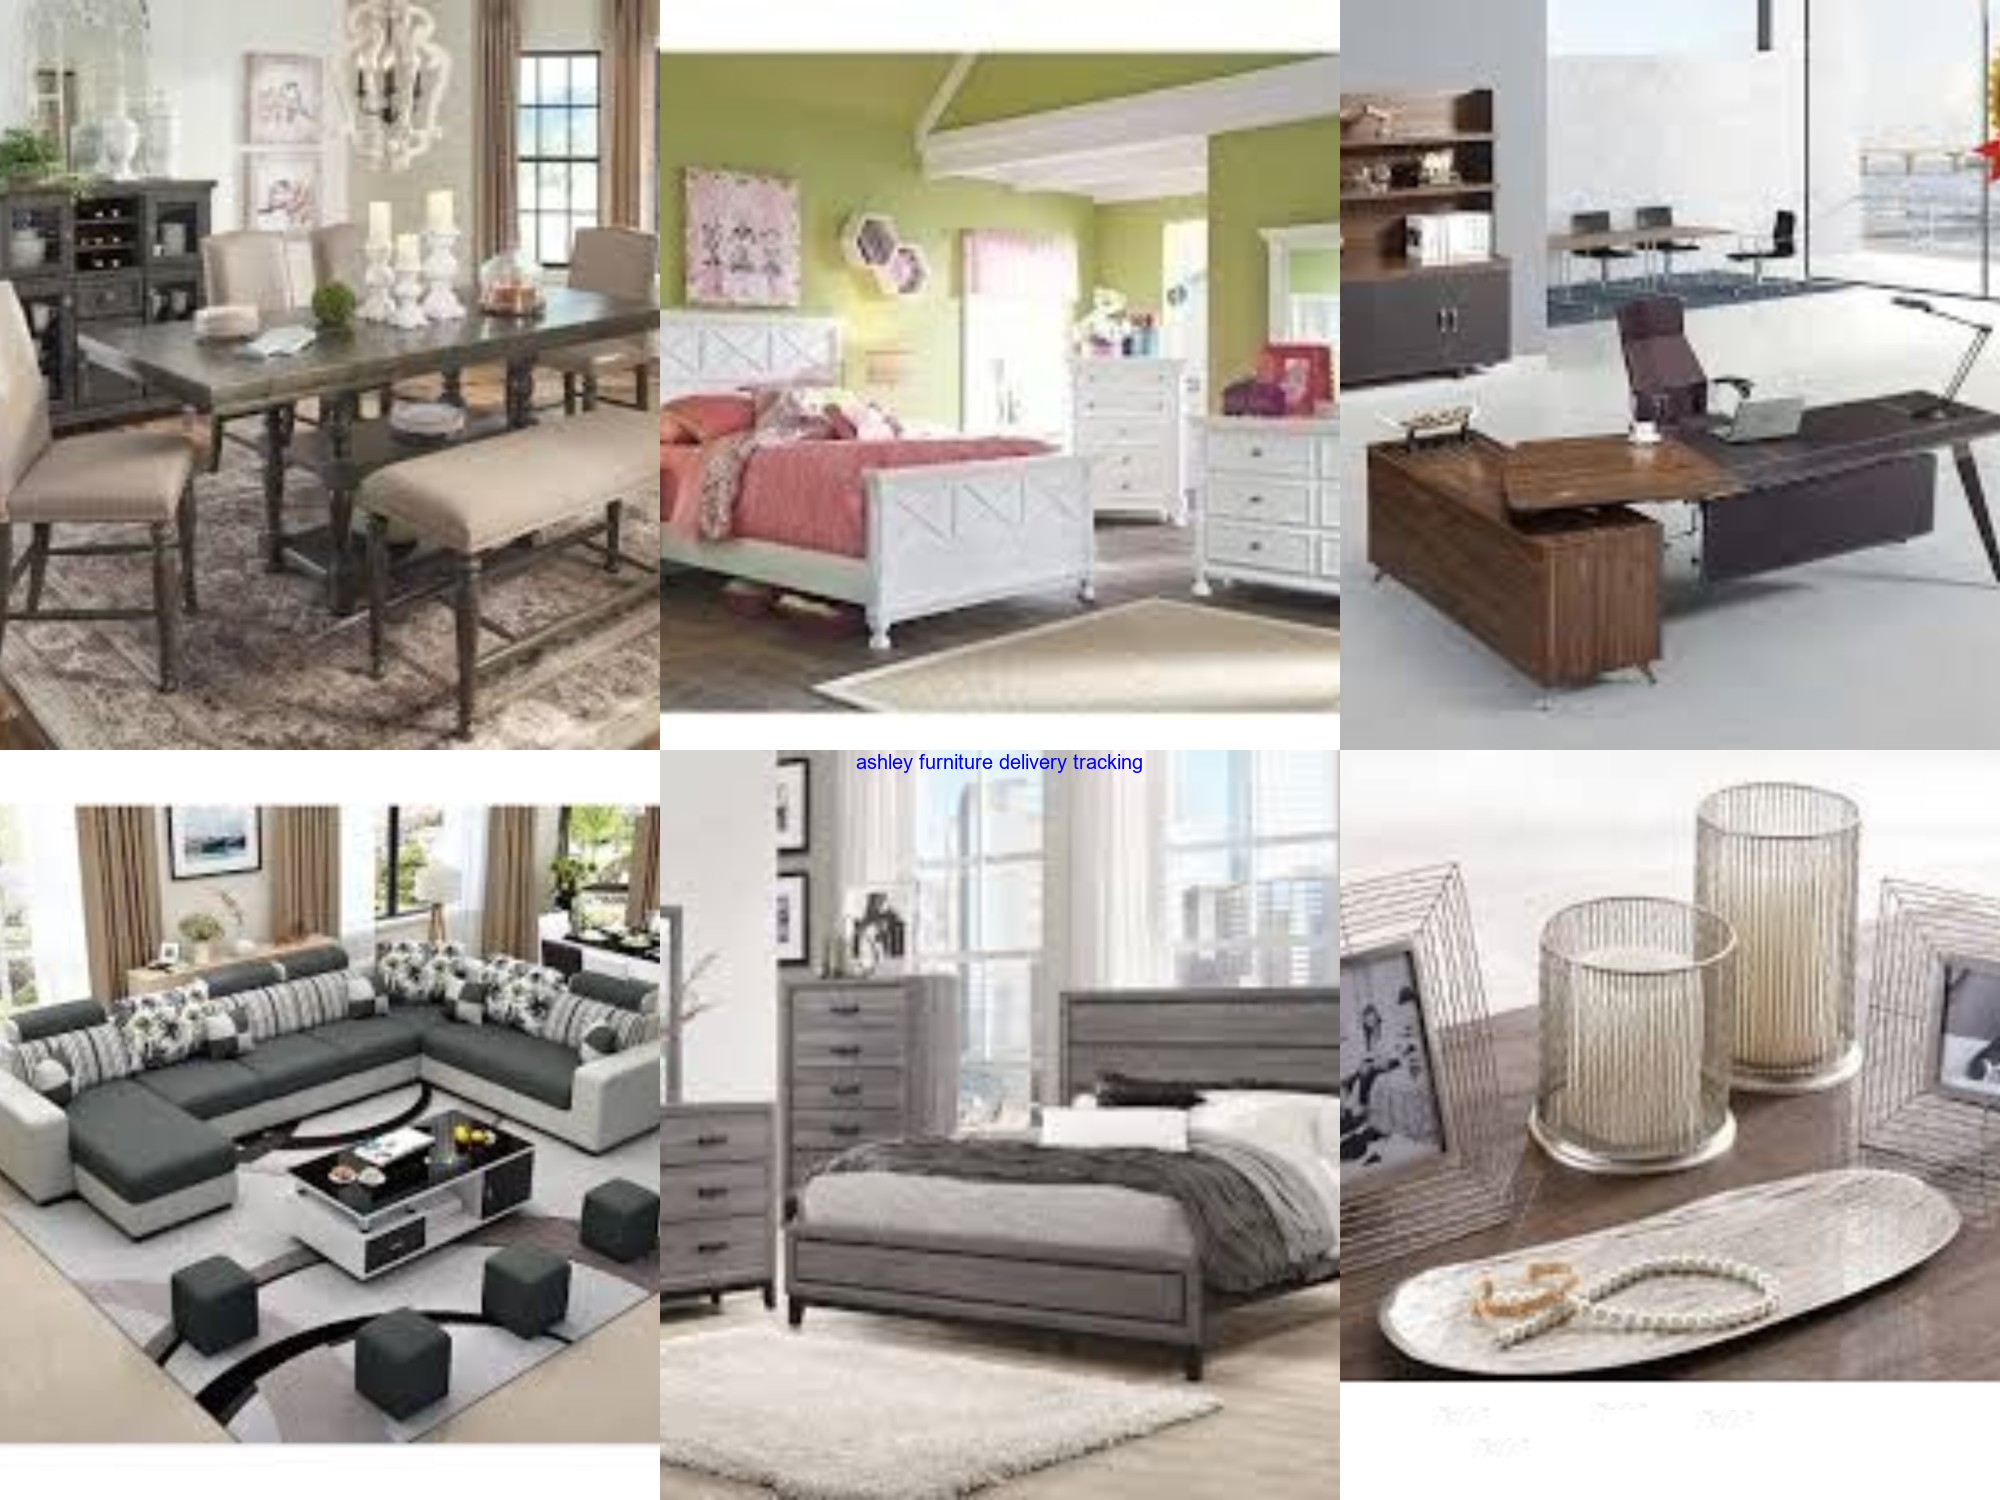 ashley furniture delivery tracking - i would recommend you